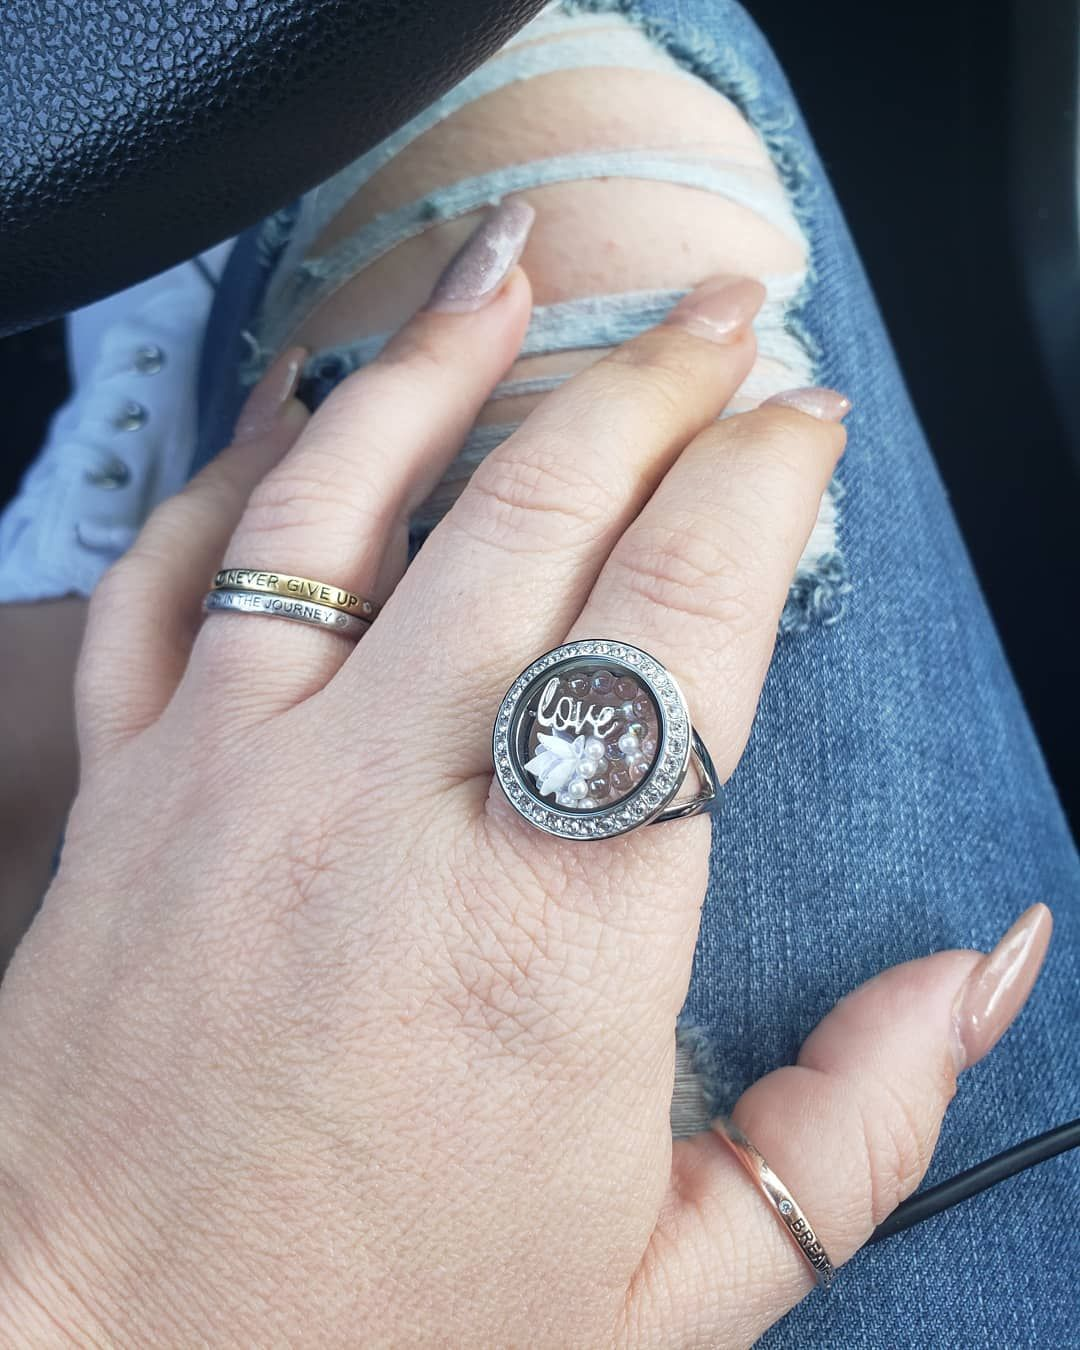 Melting the inches away. In the beginning this locket ring fit on my ring finger only, then my middl...